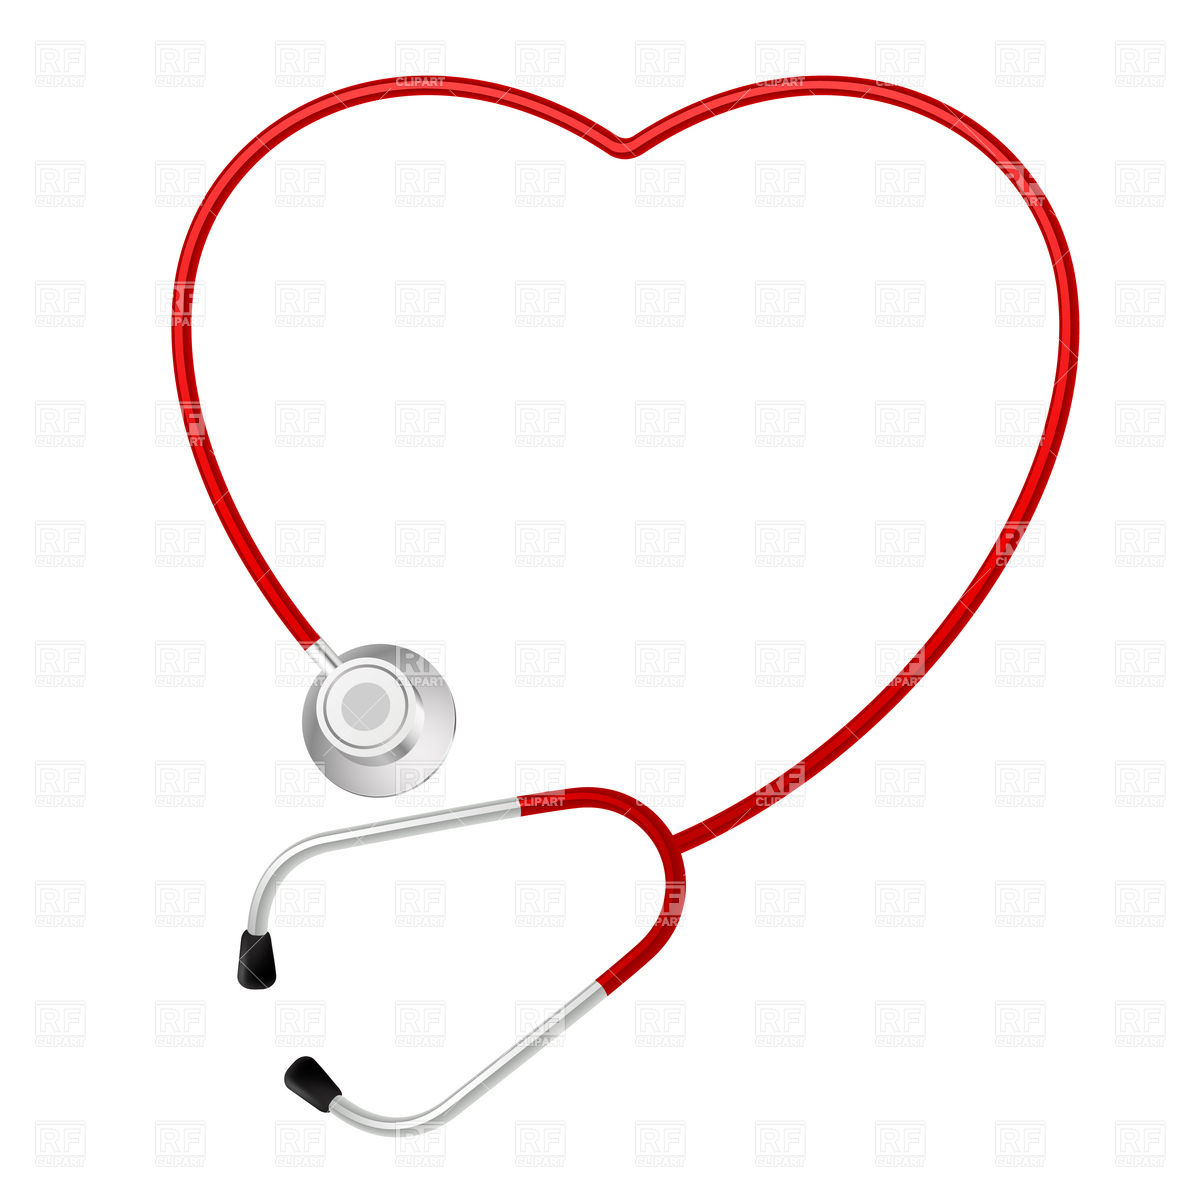 Heart Stethoscope High-quality Download Png image #27538